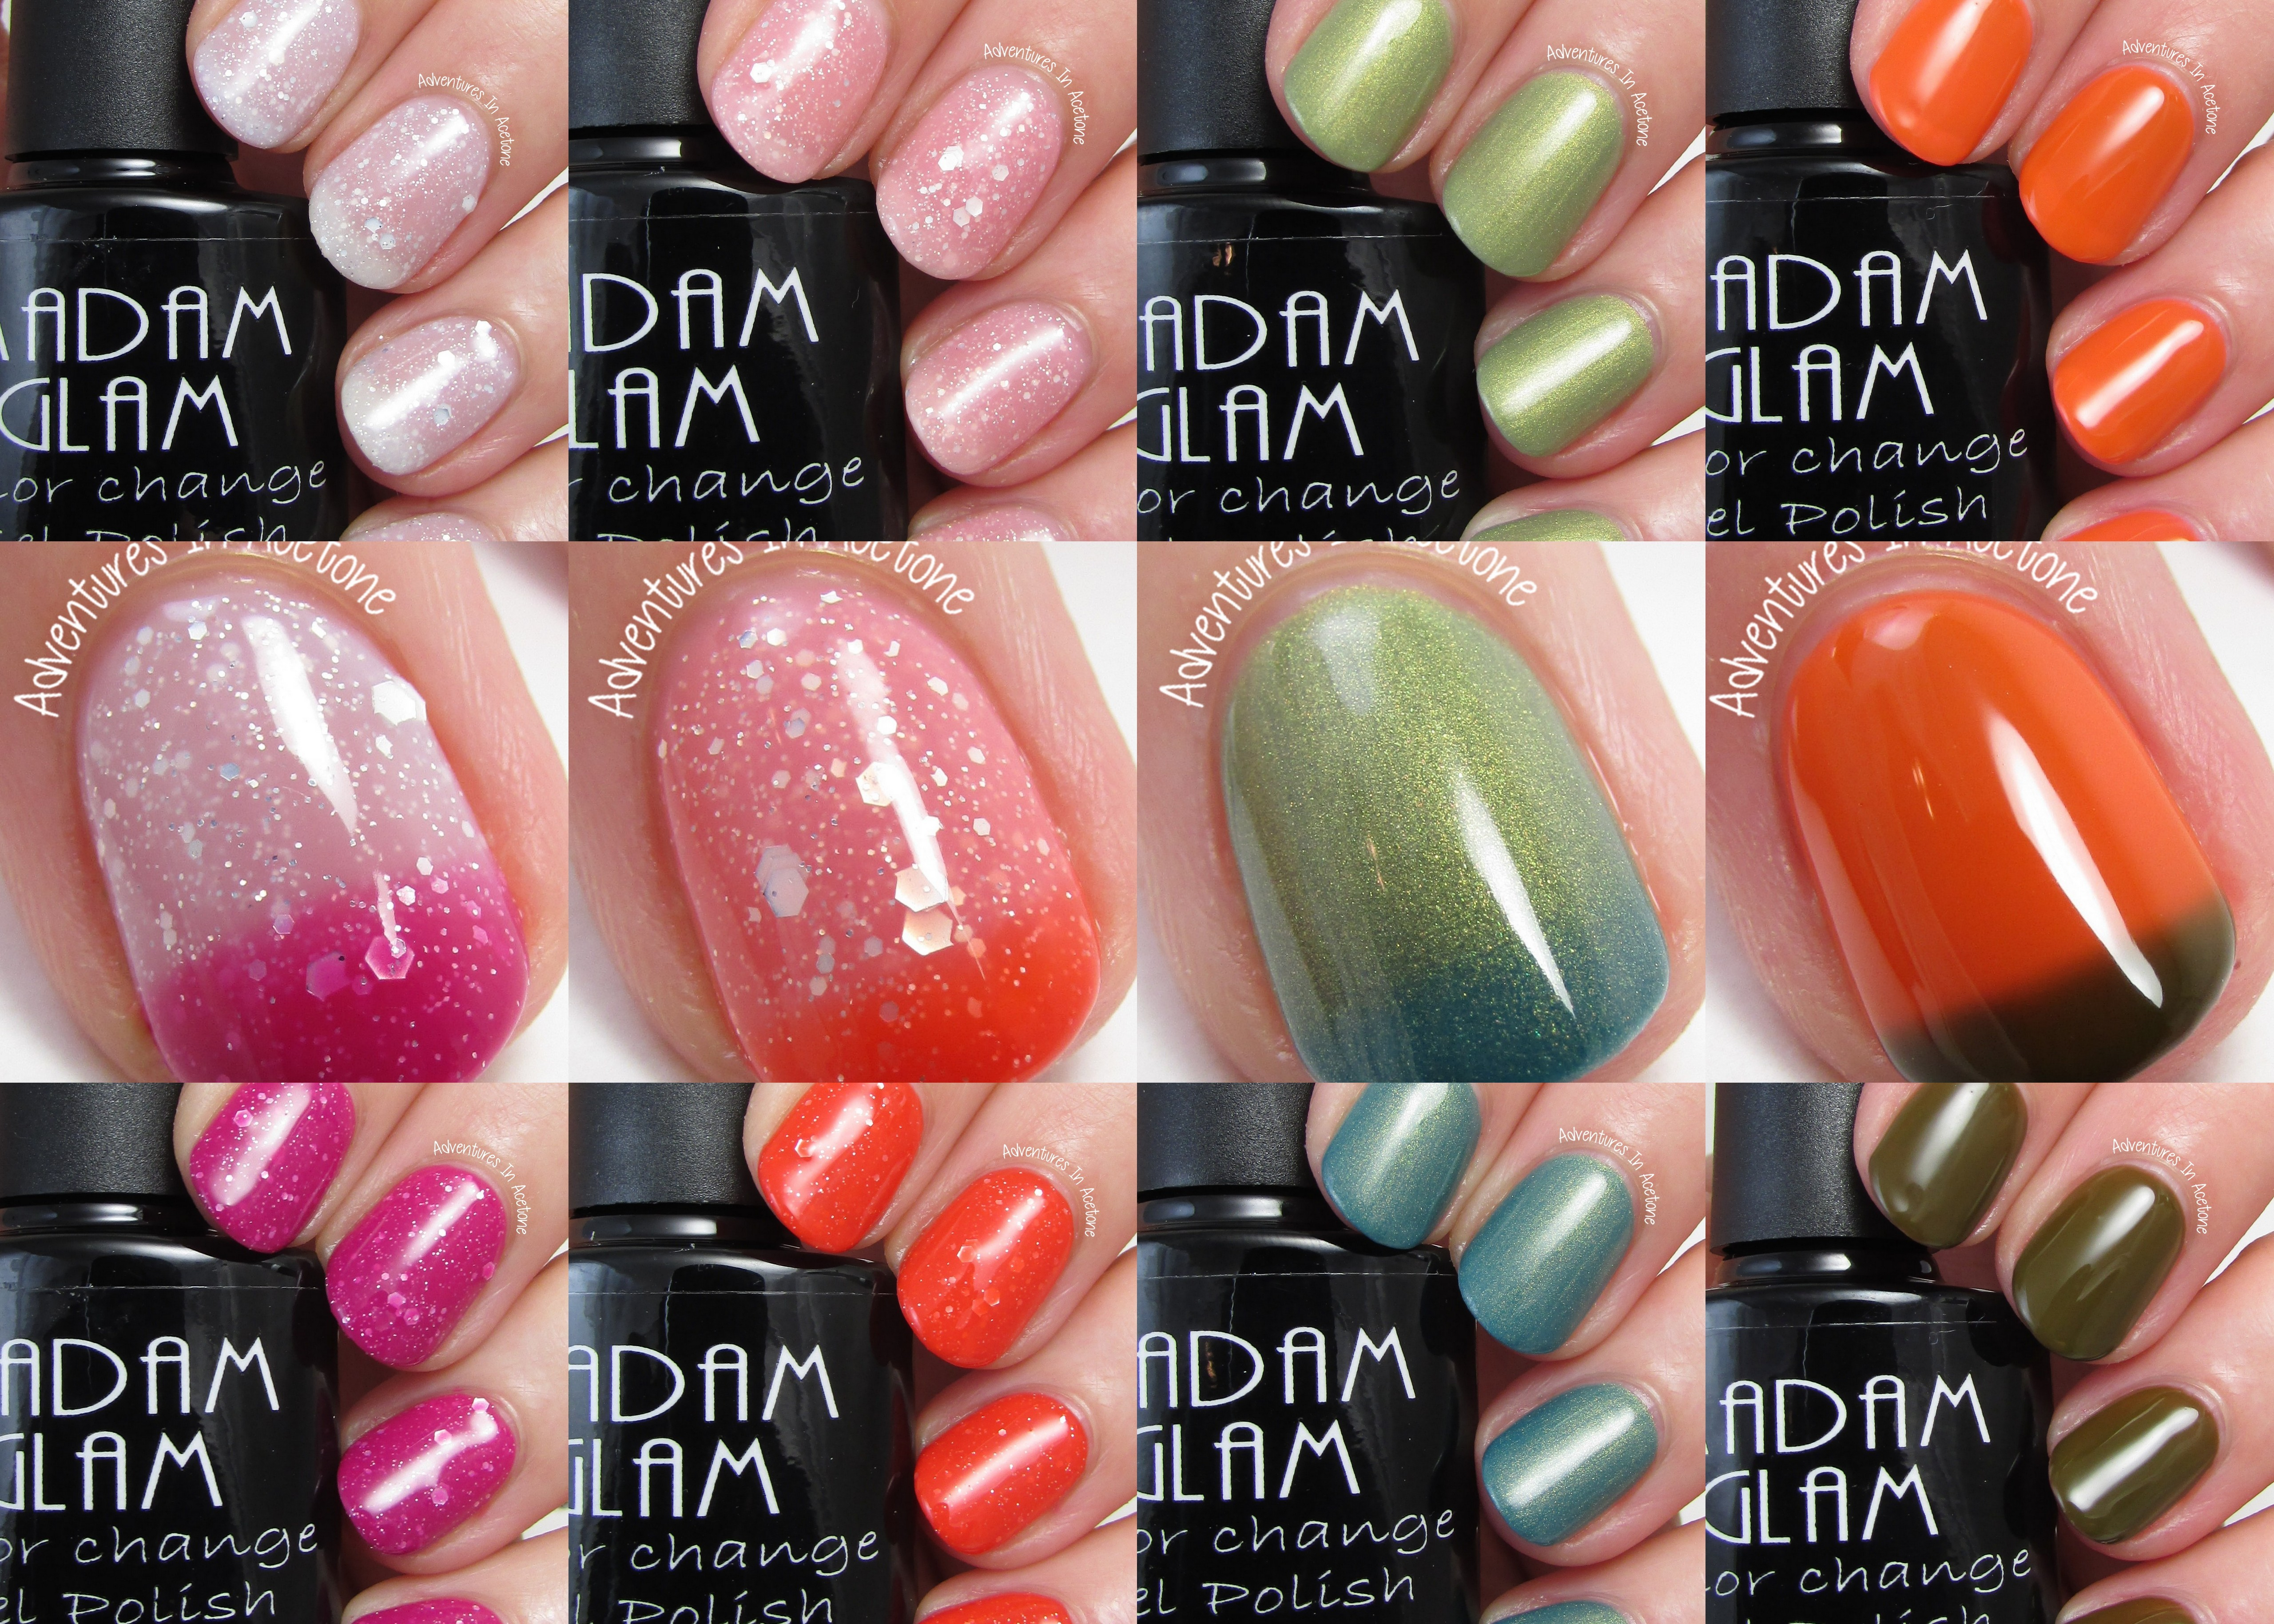 Swatch Sunday: New Madam Glam Chameleon Gels - Adventures In Acetone